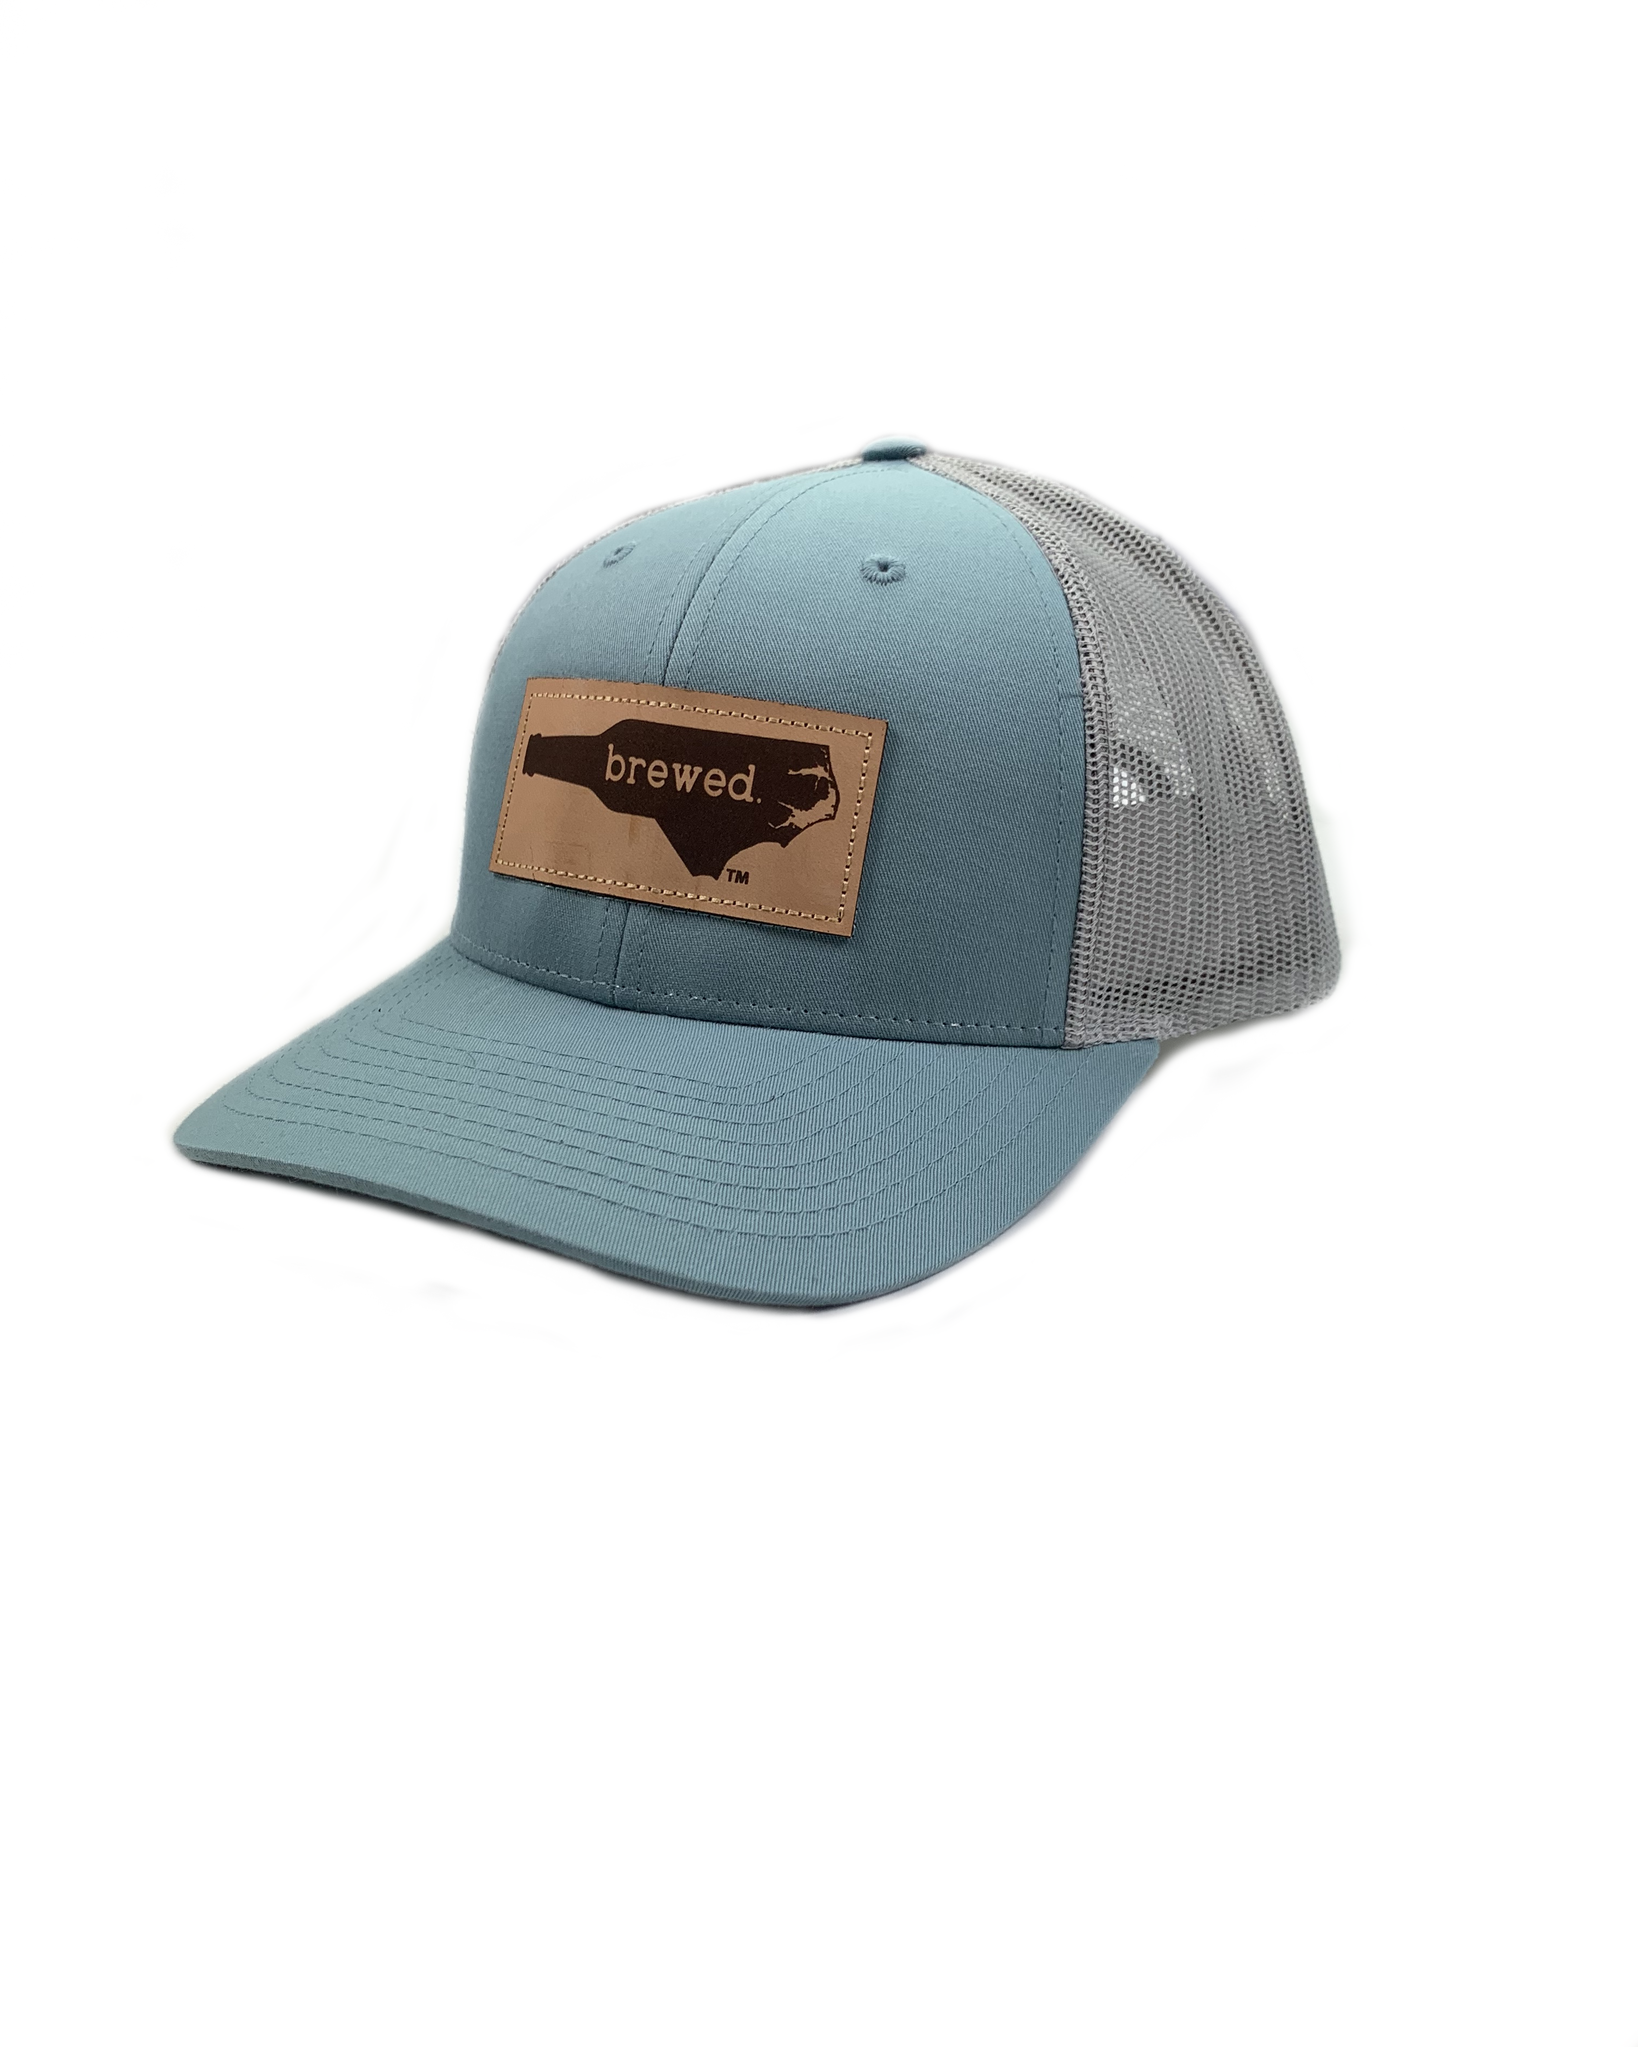 Ale Whales/Lost Wondo NC Brewed Patch Hat